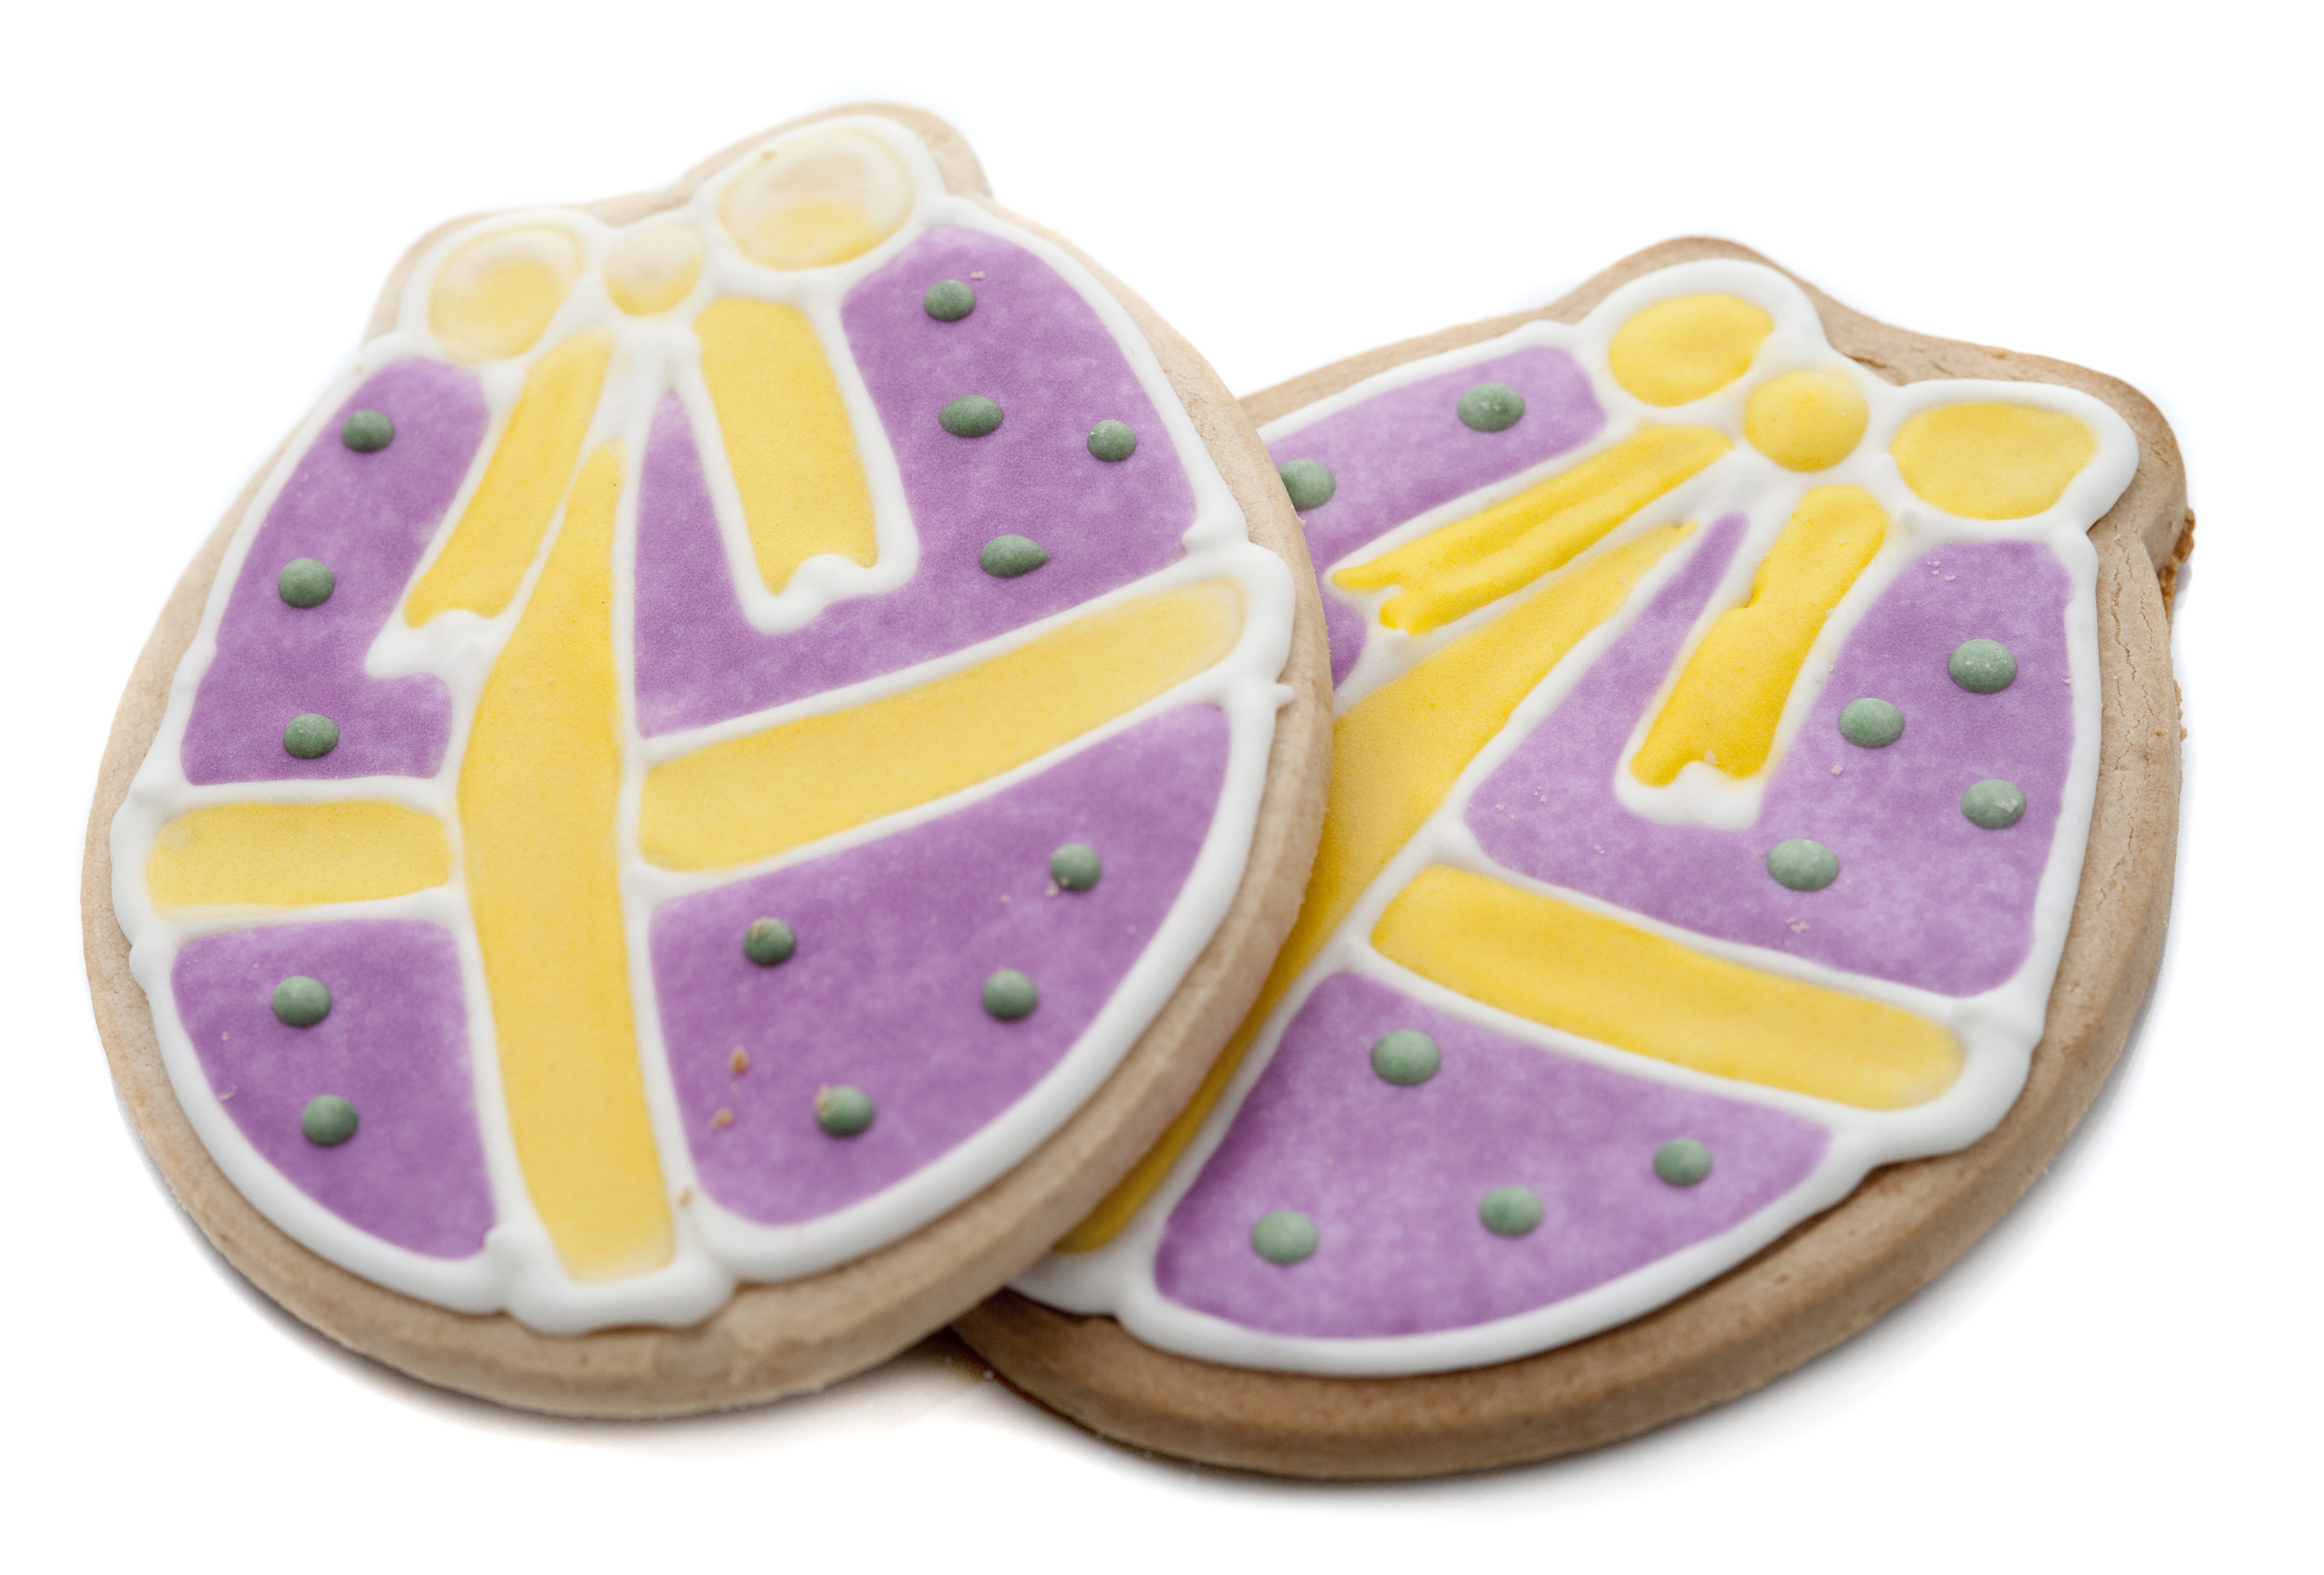 easter_egg_biscuits.jpg - Decorative biscuits in the shape of an Easter Egg glazed with colourful icing depicting wrapping and a large golden bow